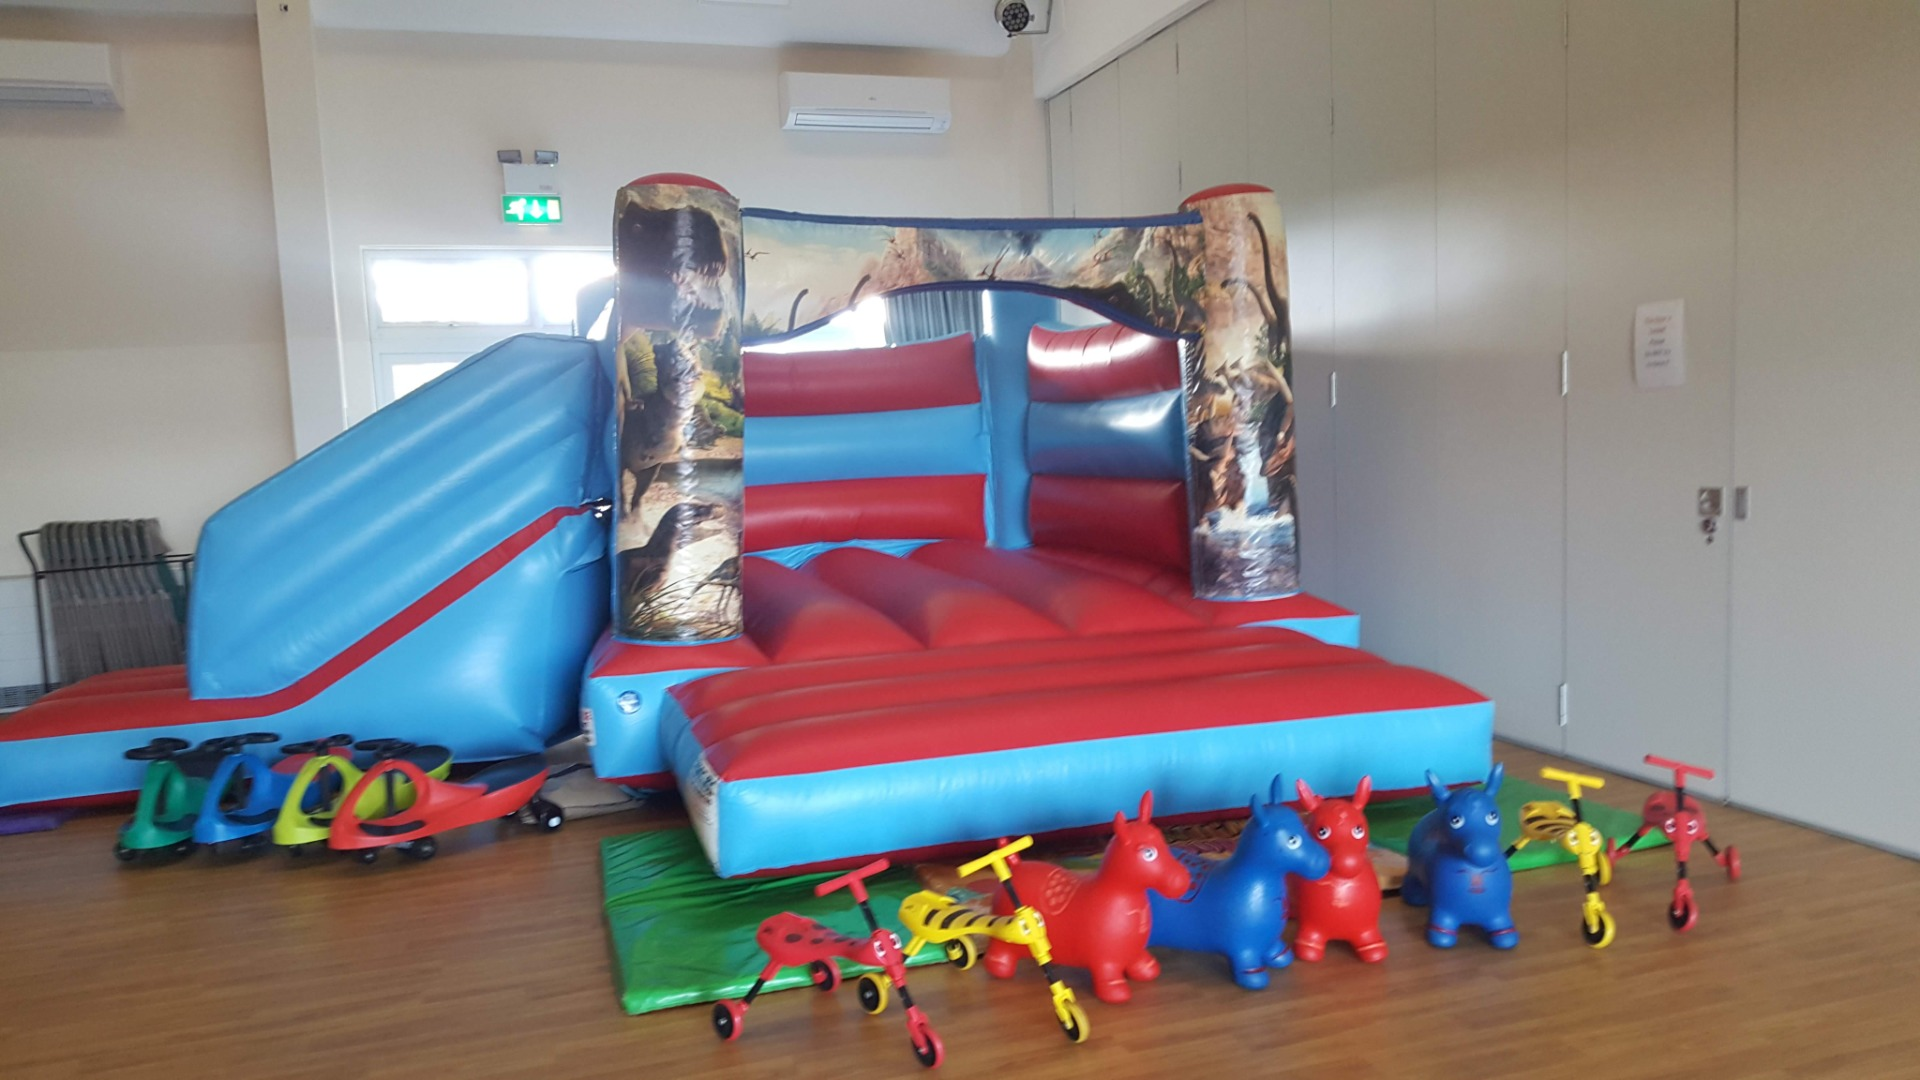 Bourne Bouncy Castles - Bouncy Castle Hire Bourne